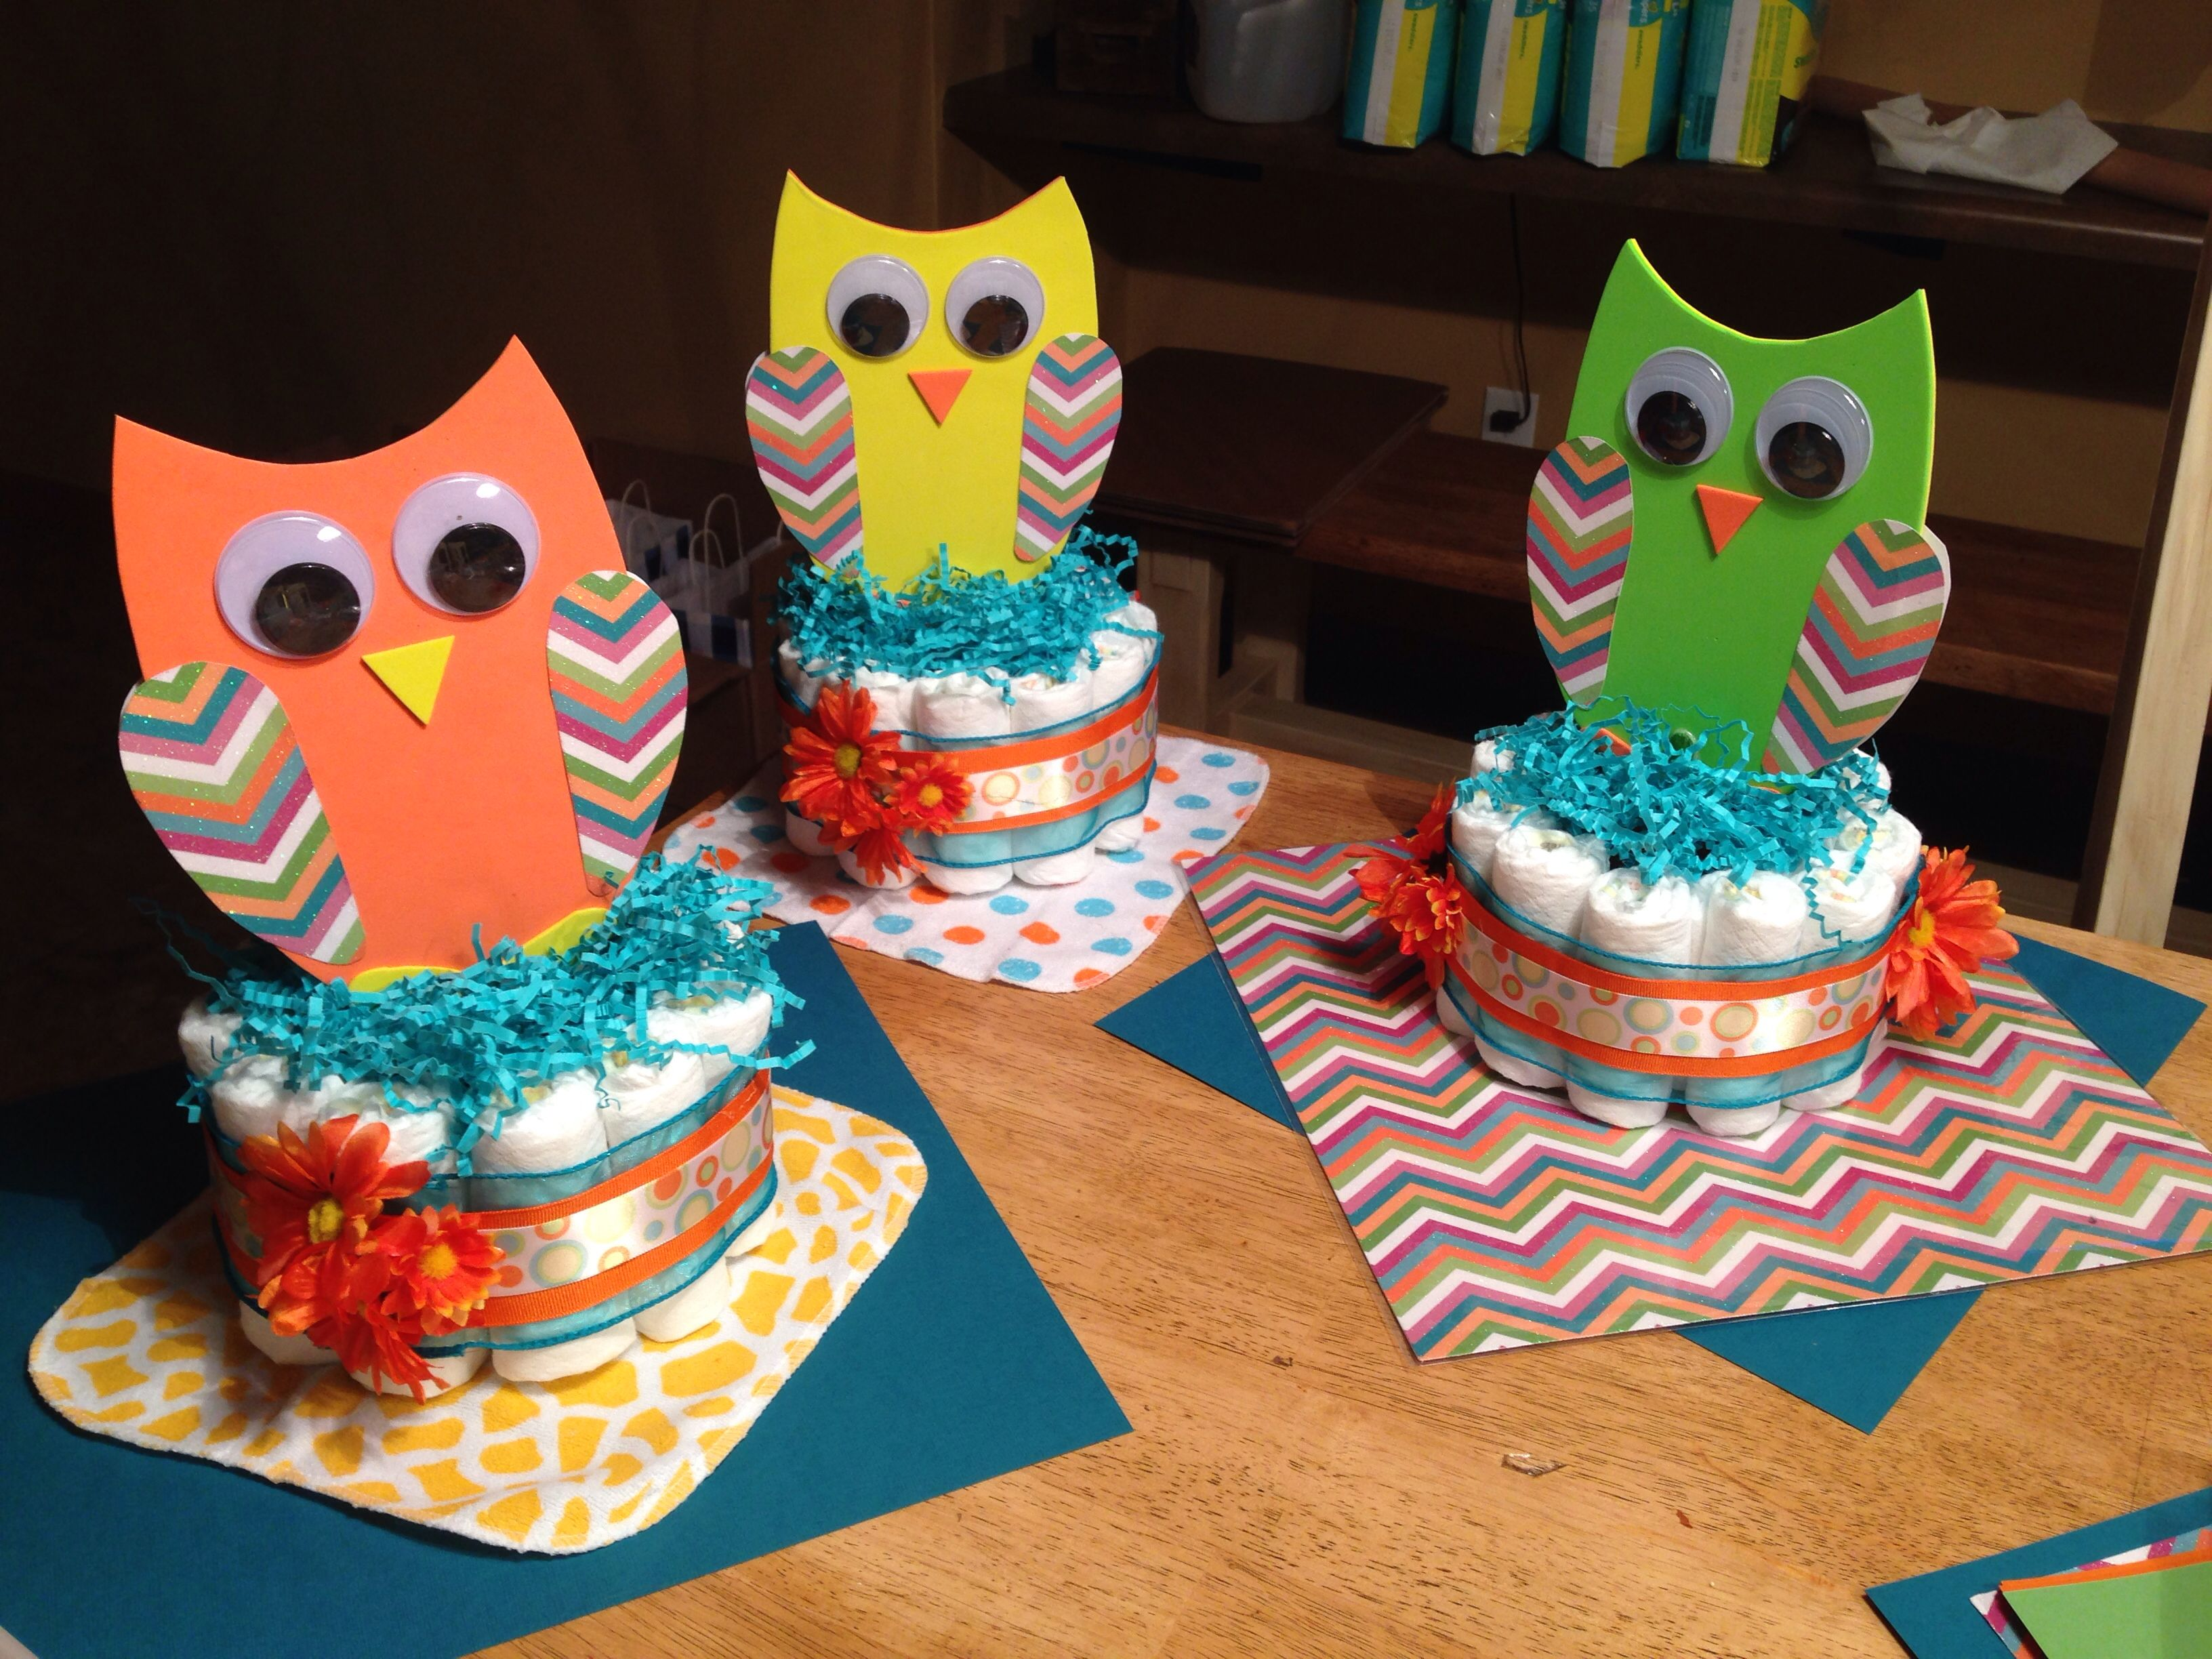 Foam board craft ideas - Diaper Cakes Centerpieces For Owl Theme Baby Shower Owls Made From Foam Board With Scrapbooking